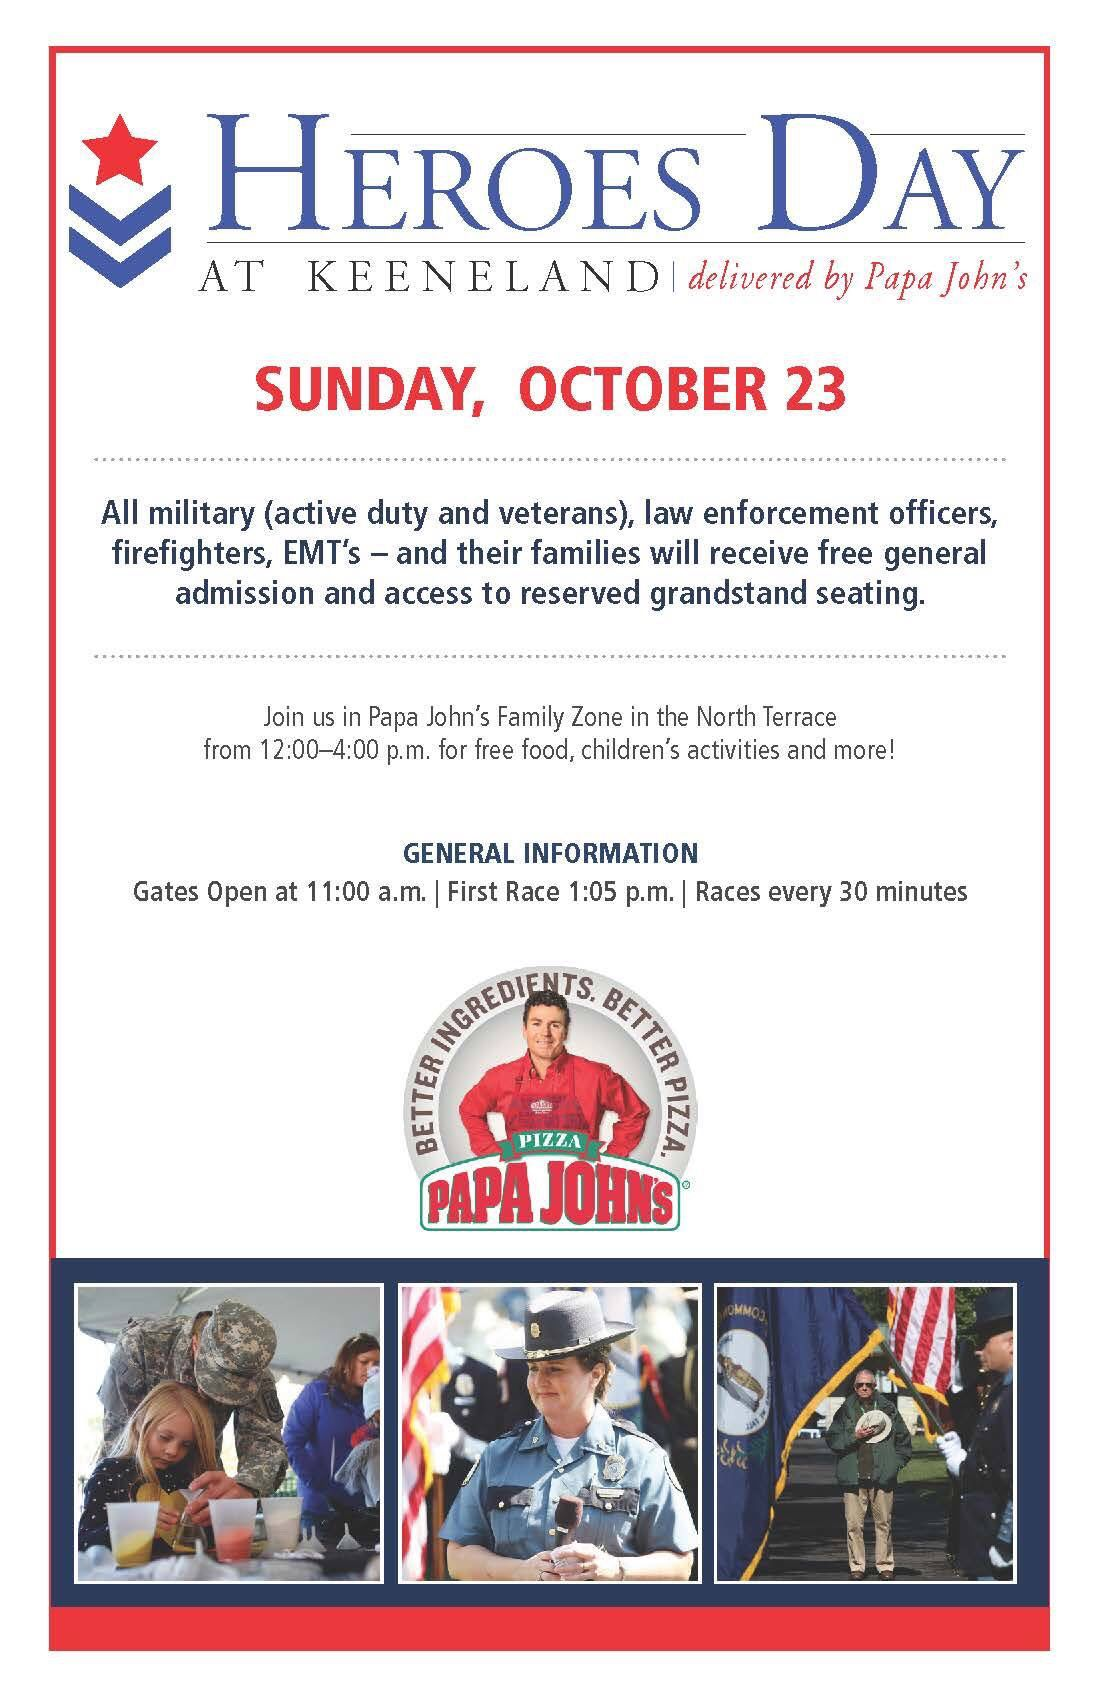 Come out to Keeneland Sunday October 23rd, for Heroes Day ...